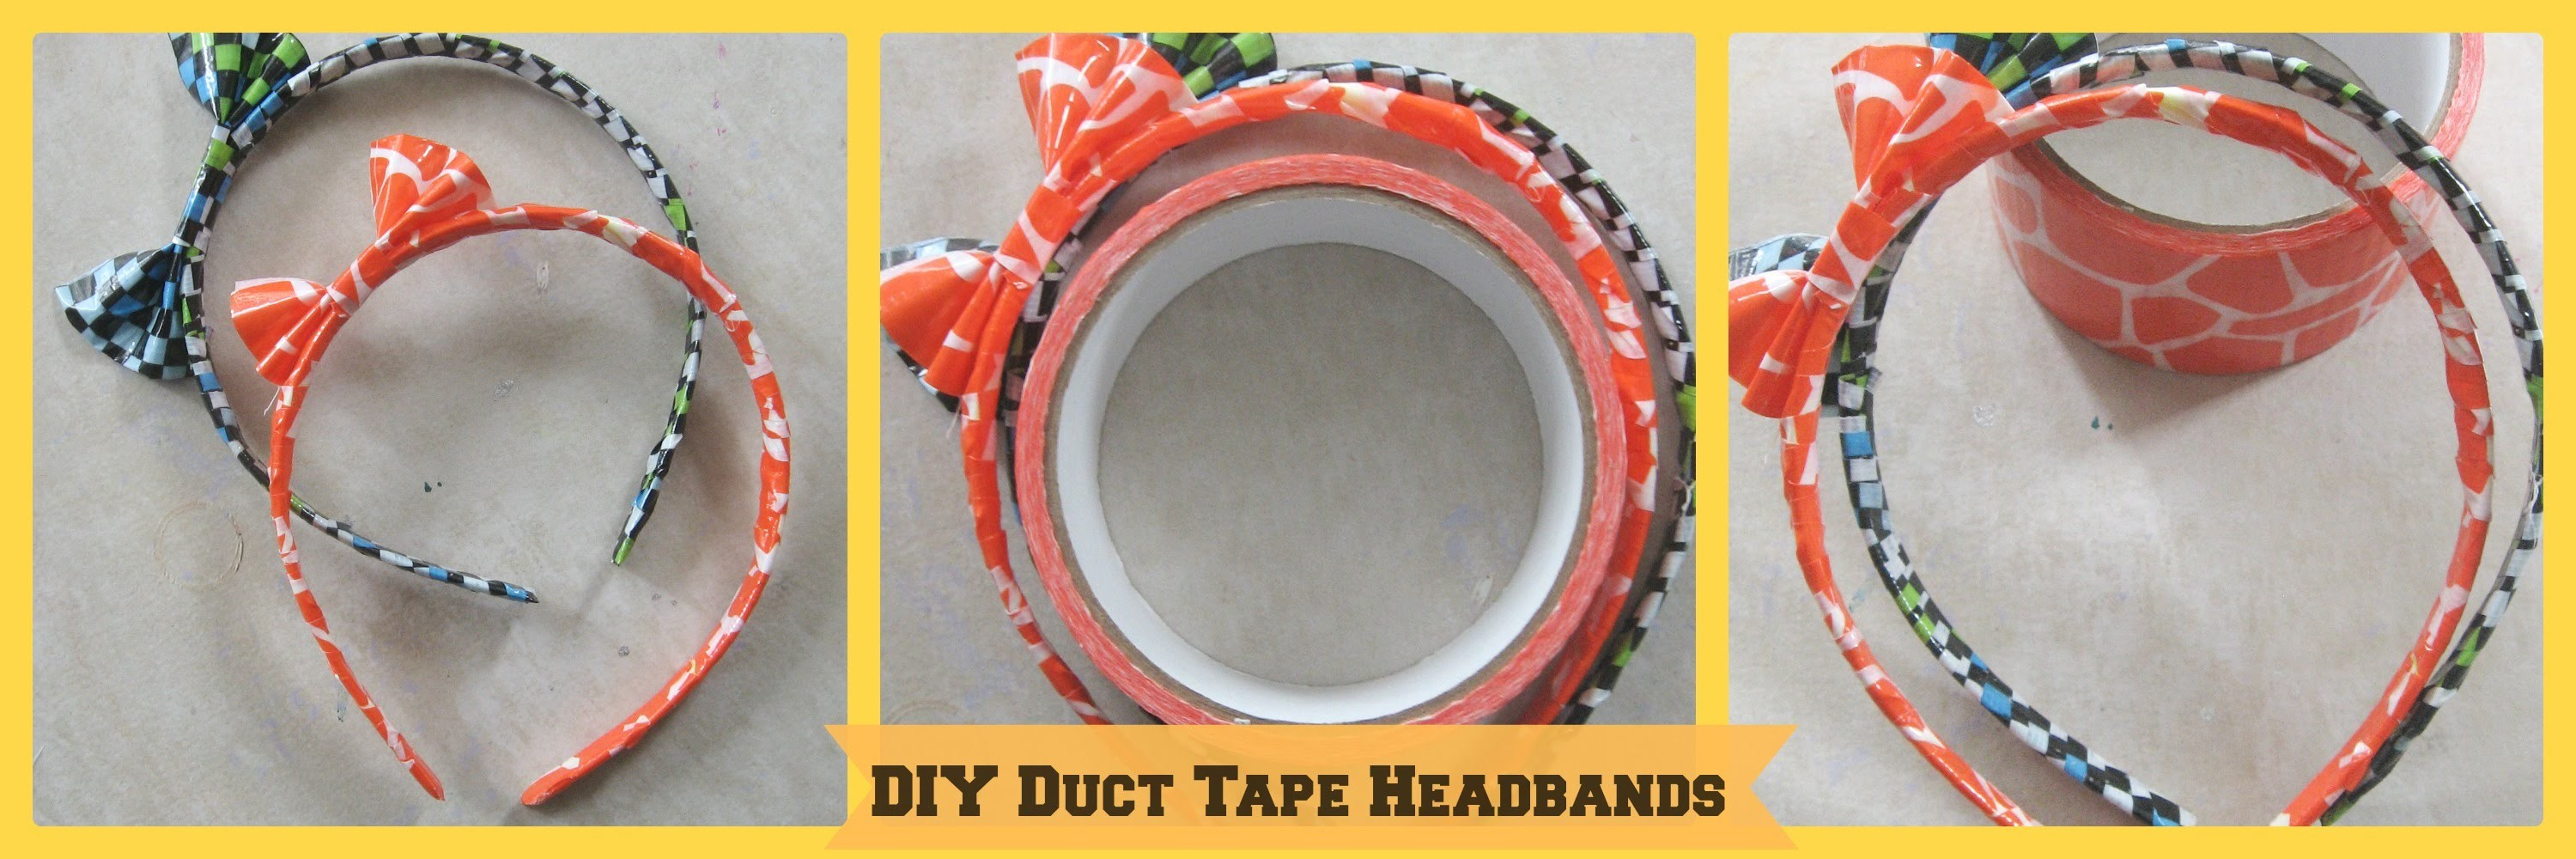 DIY Duct Tape Headbands.DIY Duct Tape Crafts.How to Make a Duct Tape Headband- Tutorial